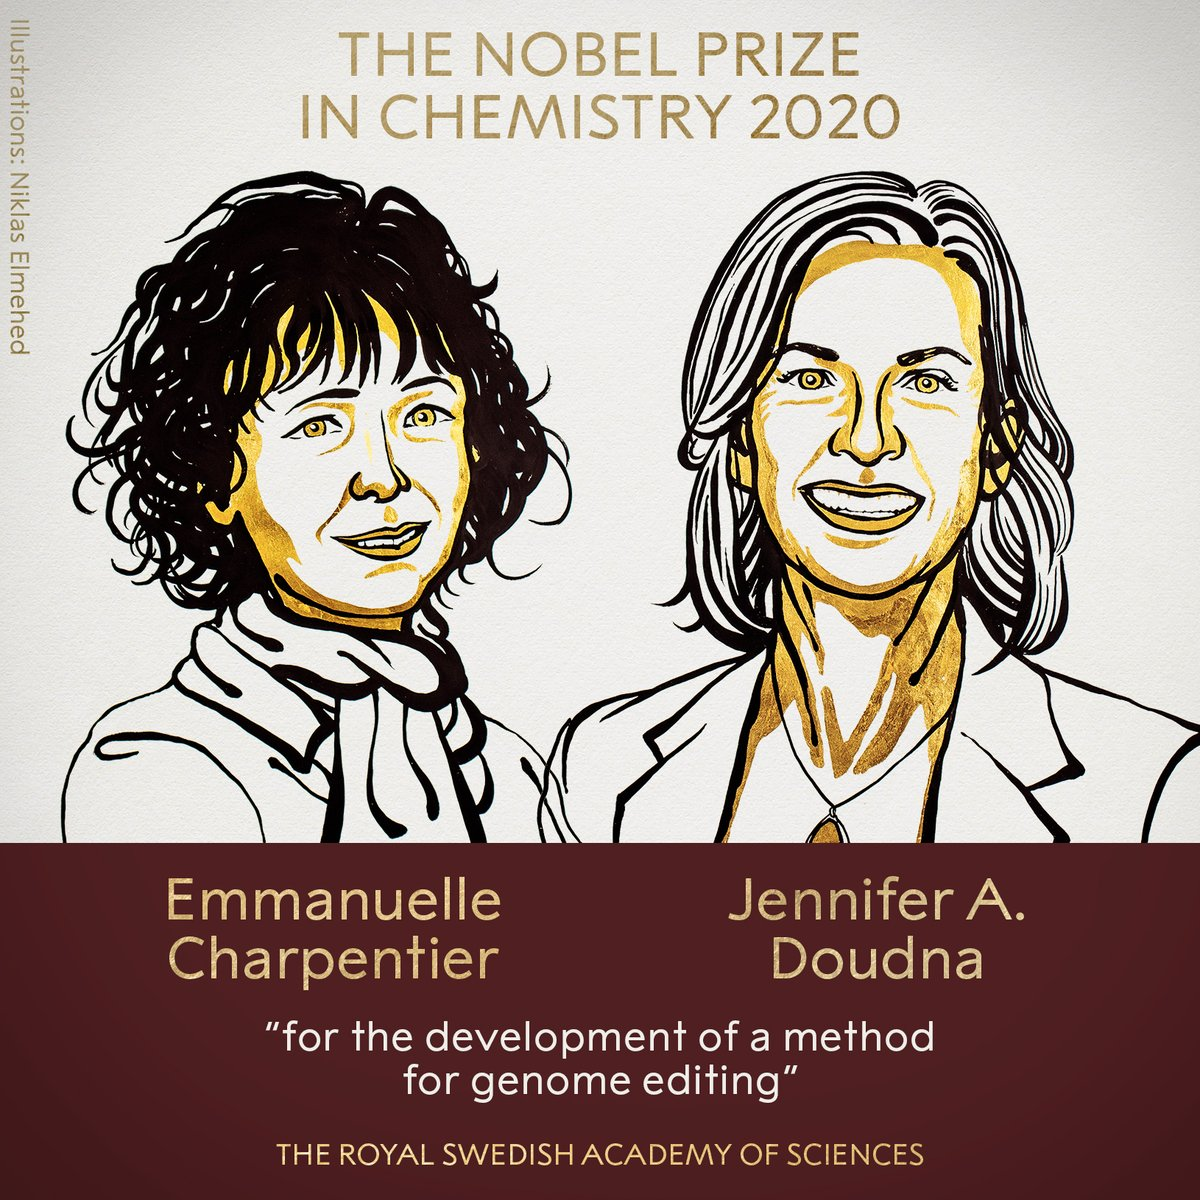 """BREAKING NEWS:  The 2020 #NobelPrize in Chemistry has been awarded to Emmanuelle Charpentier and Jennifer A. Doudna """"for the development of a method for genome editing."""" https://t.co/CrsnEuSwGD"""